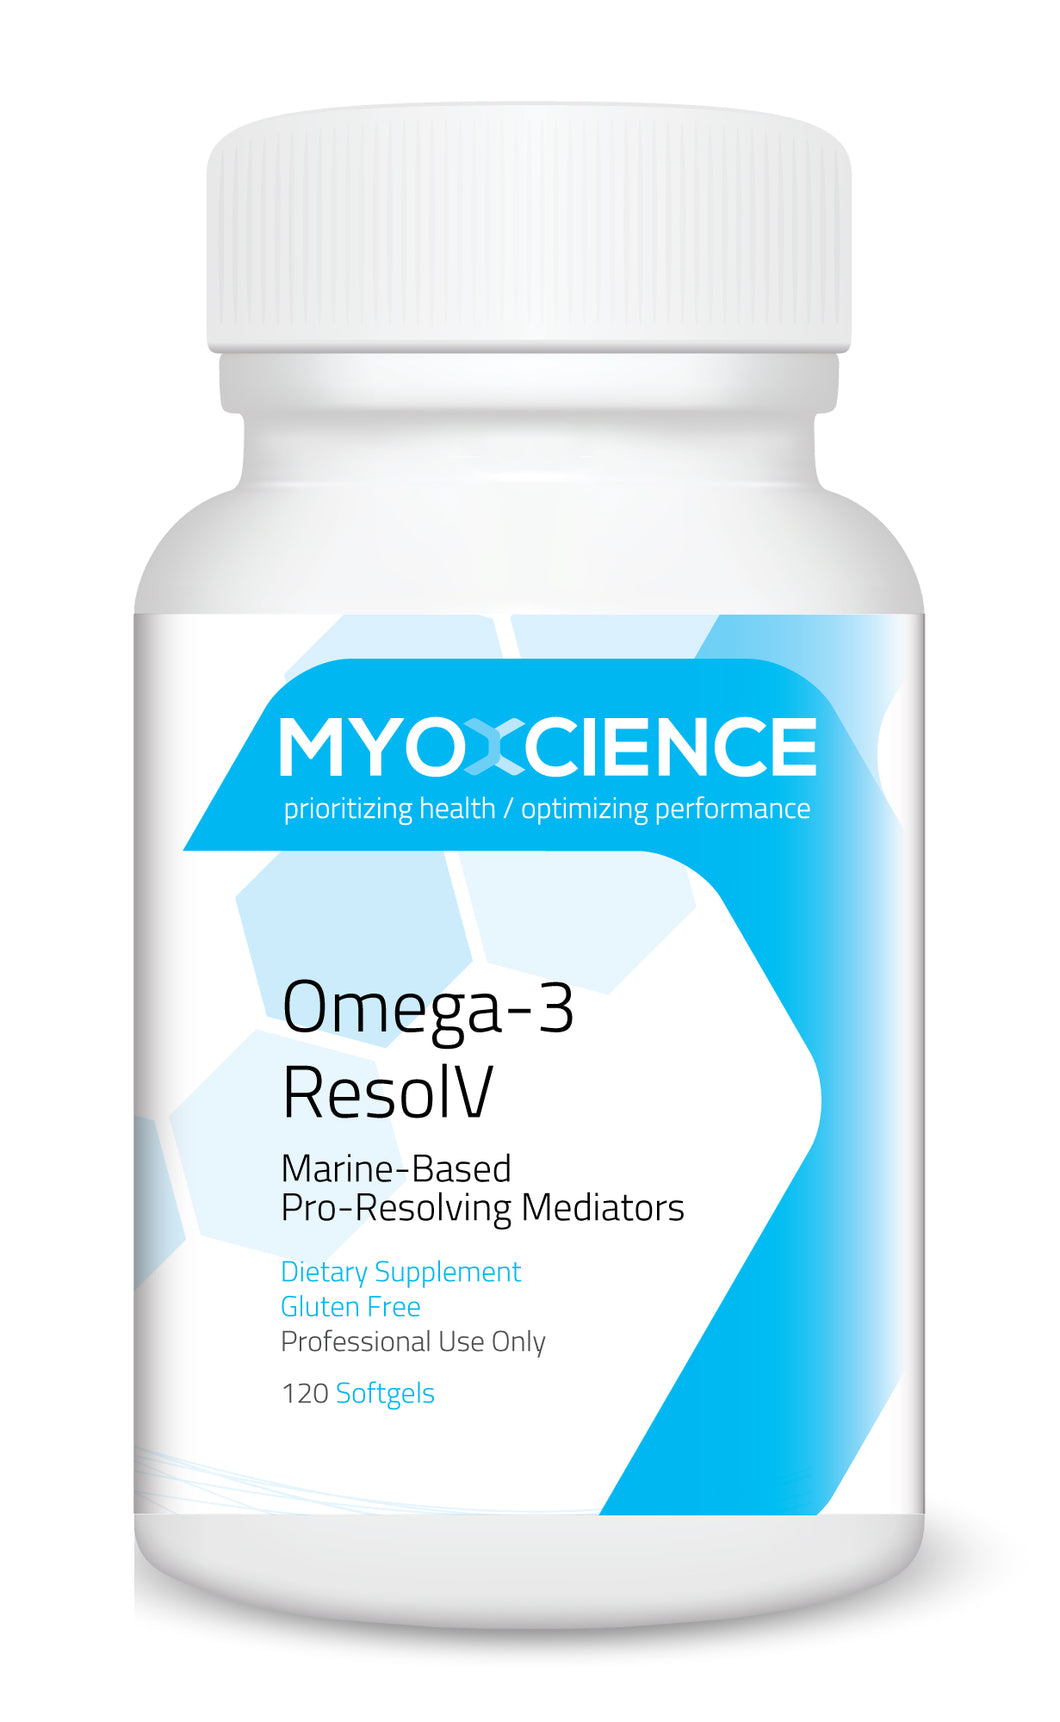 Omega-3 ResolV | Pro-Resolving Mediators from Alaskan Cod Liver Oil